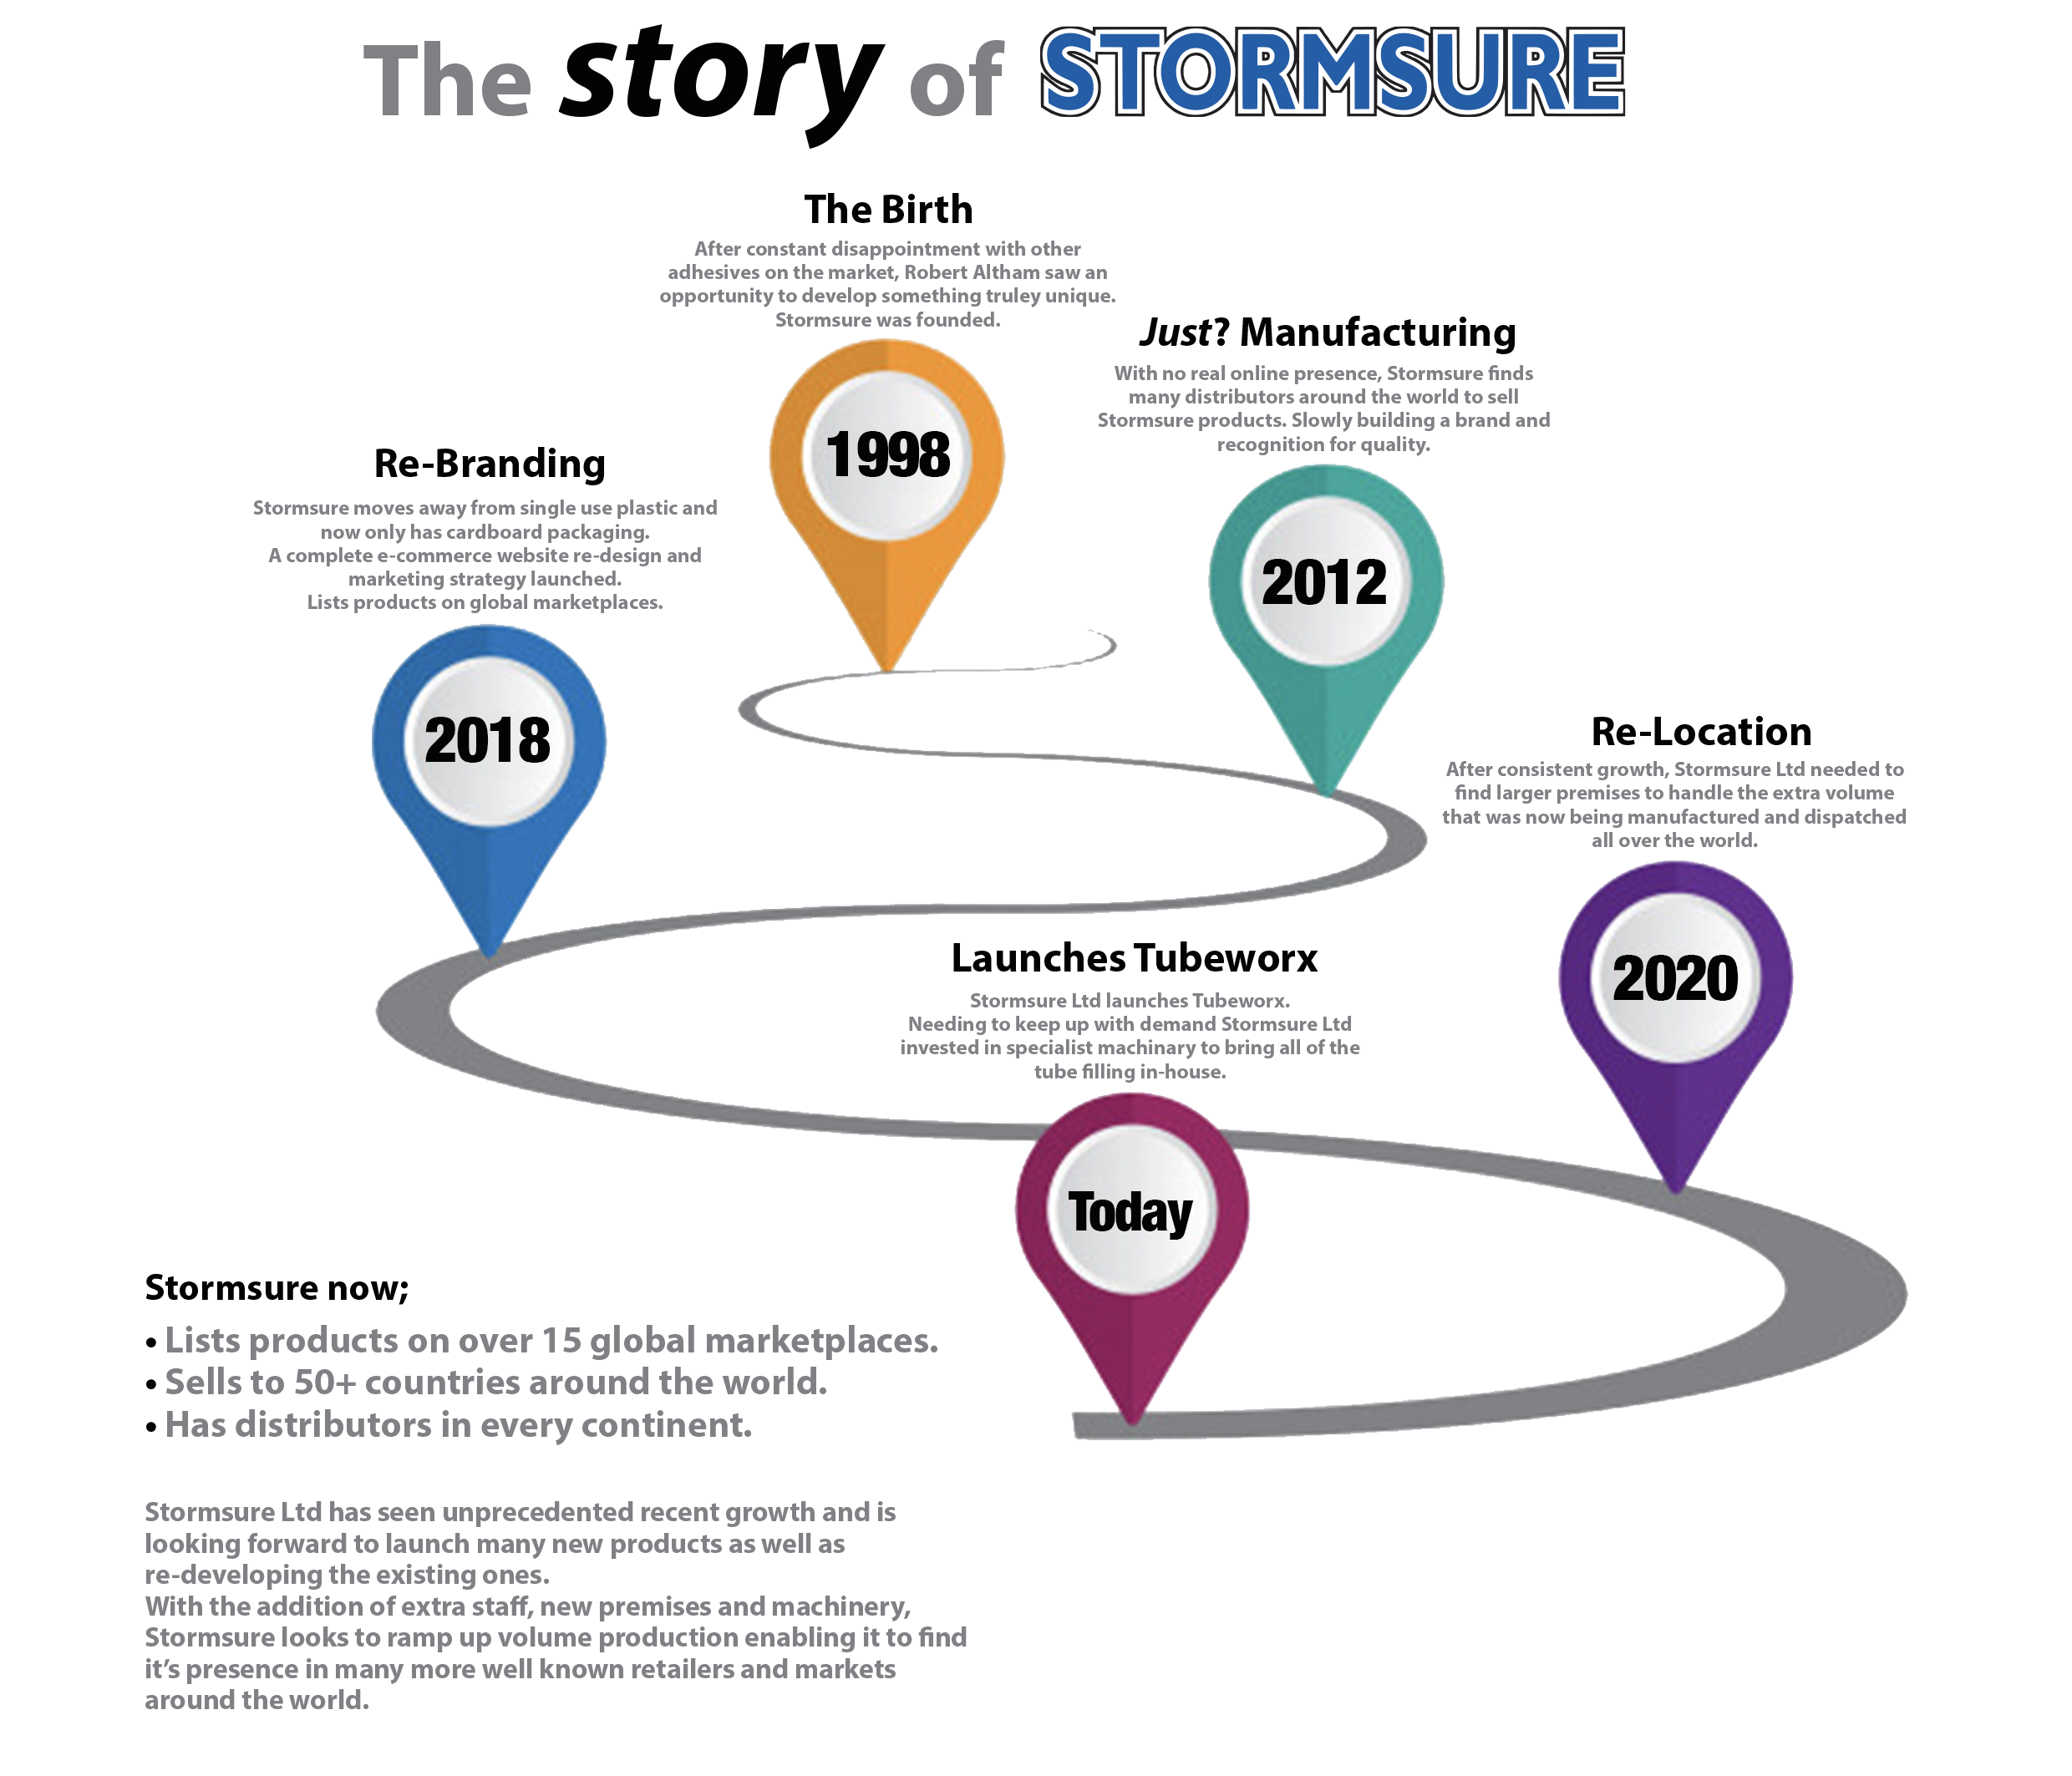 The story of Stormsure